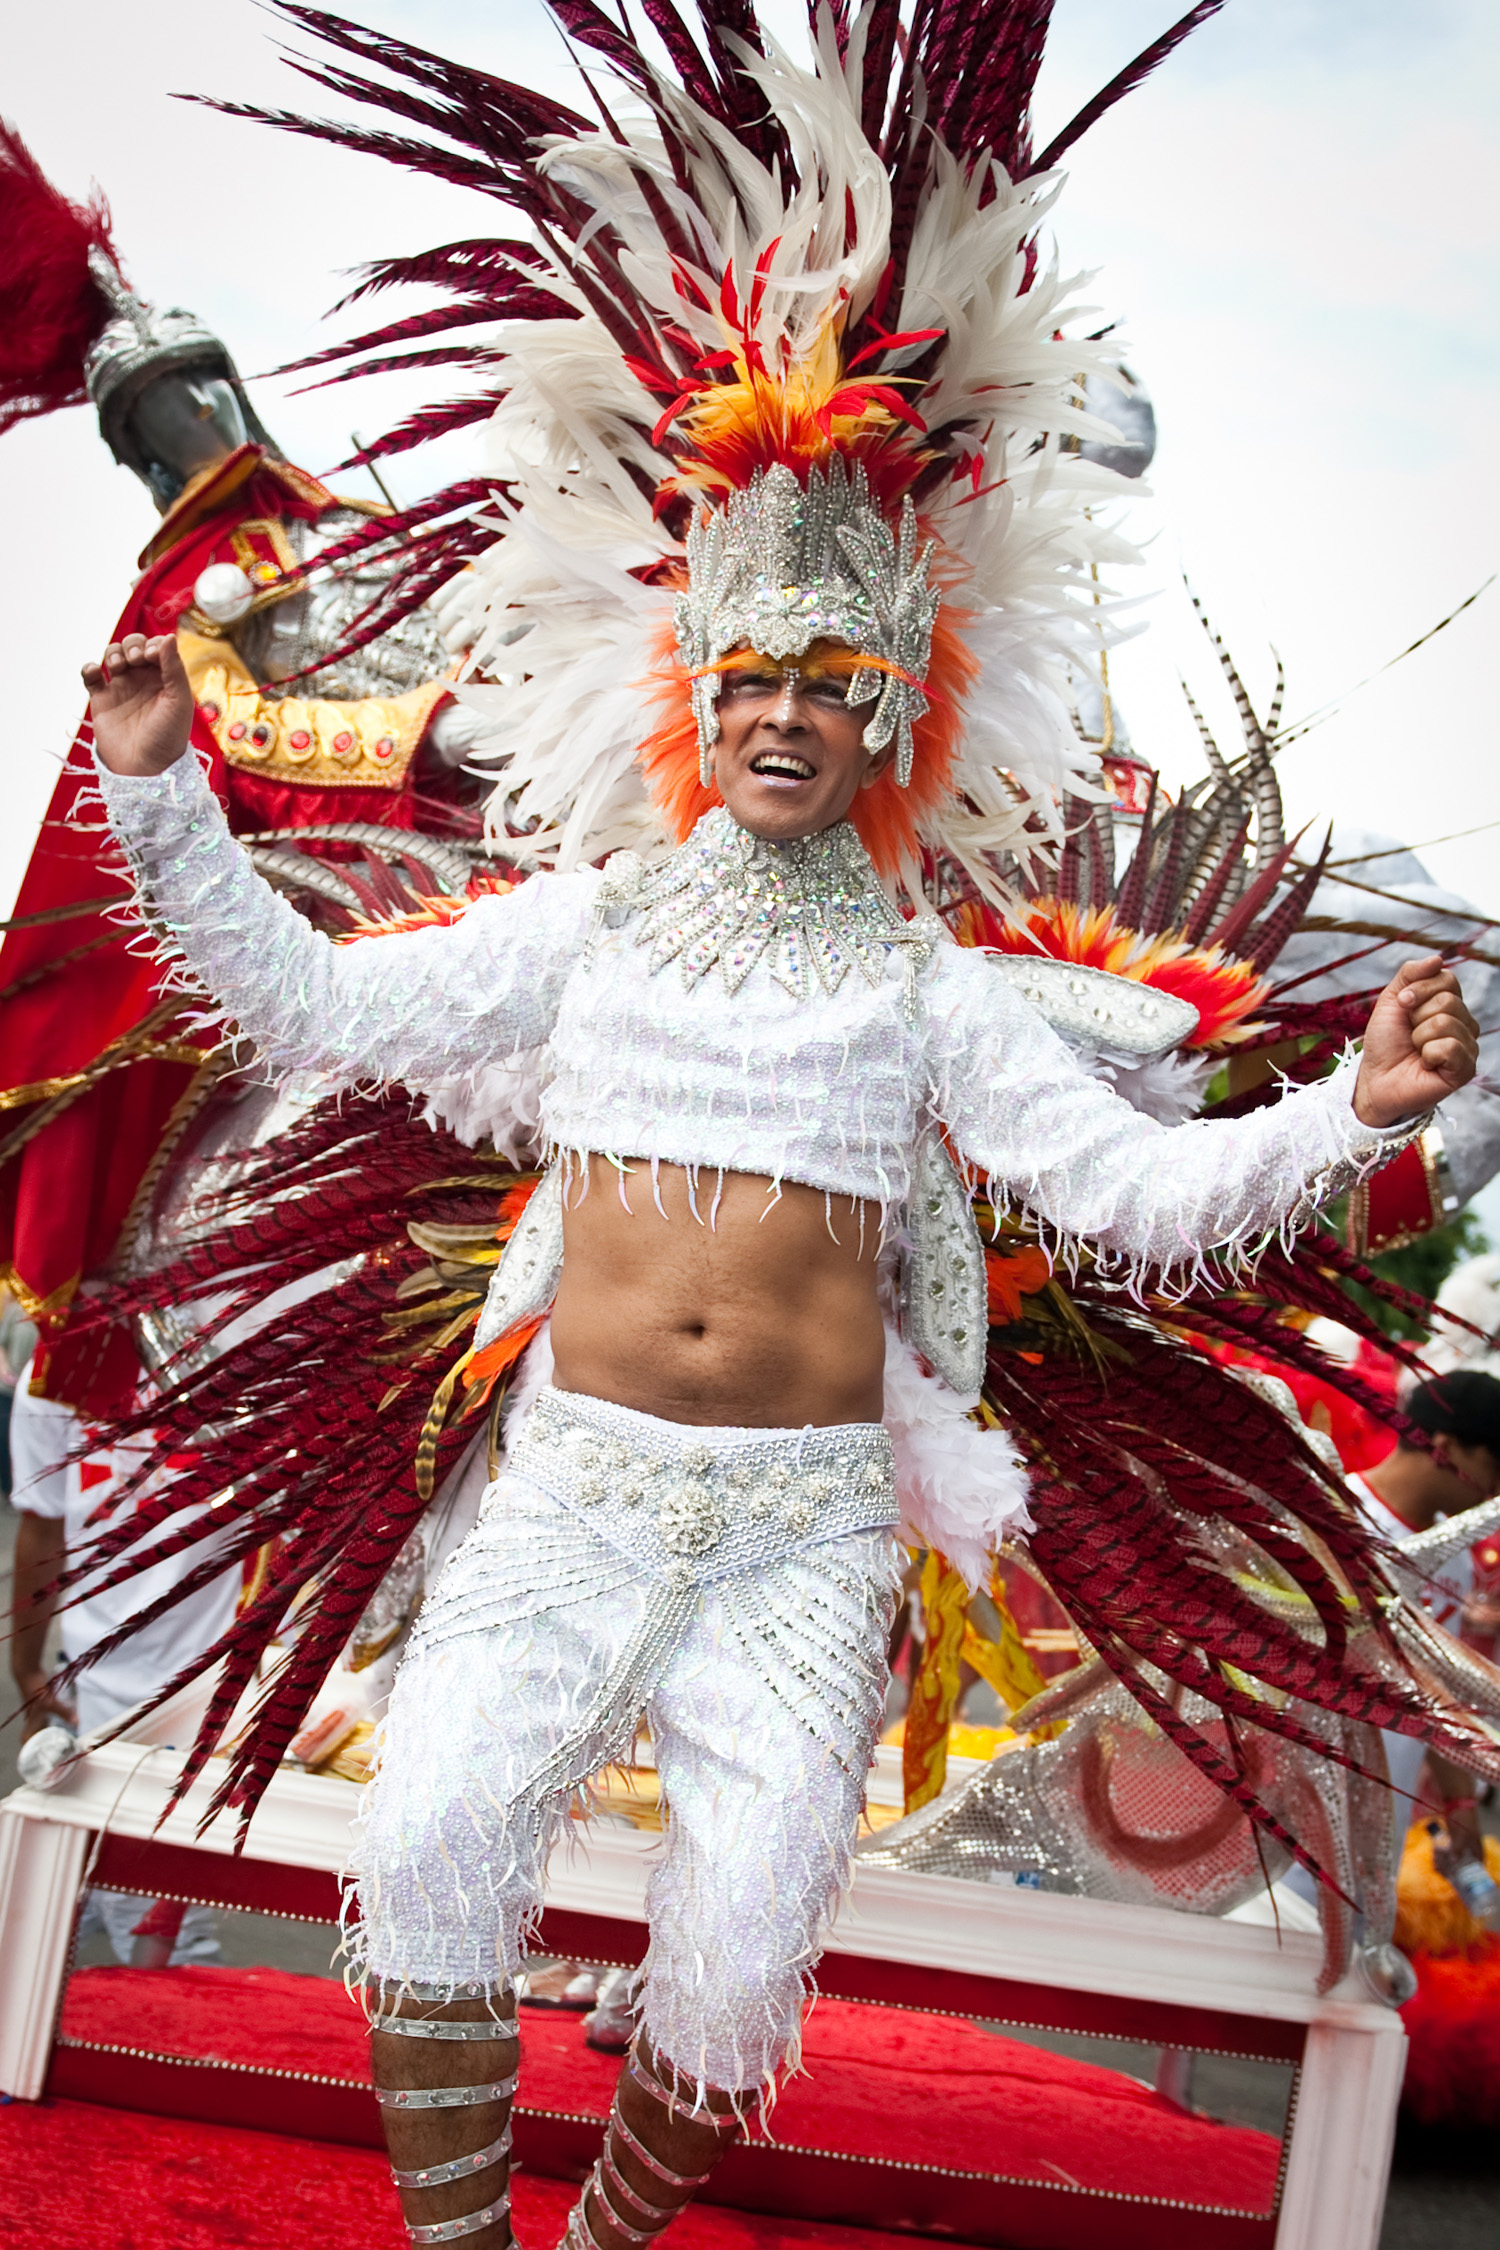 Carnival_the_rest_05